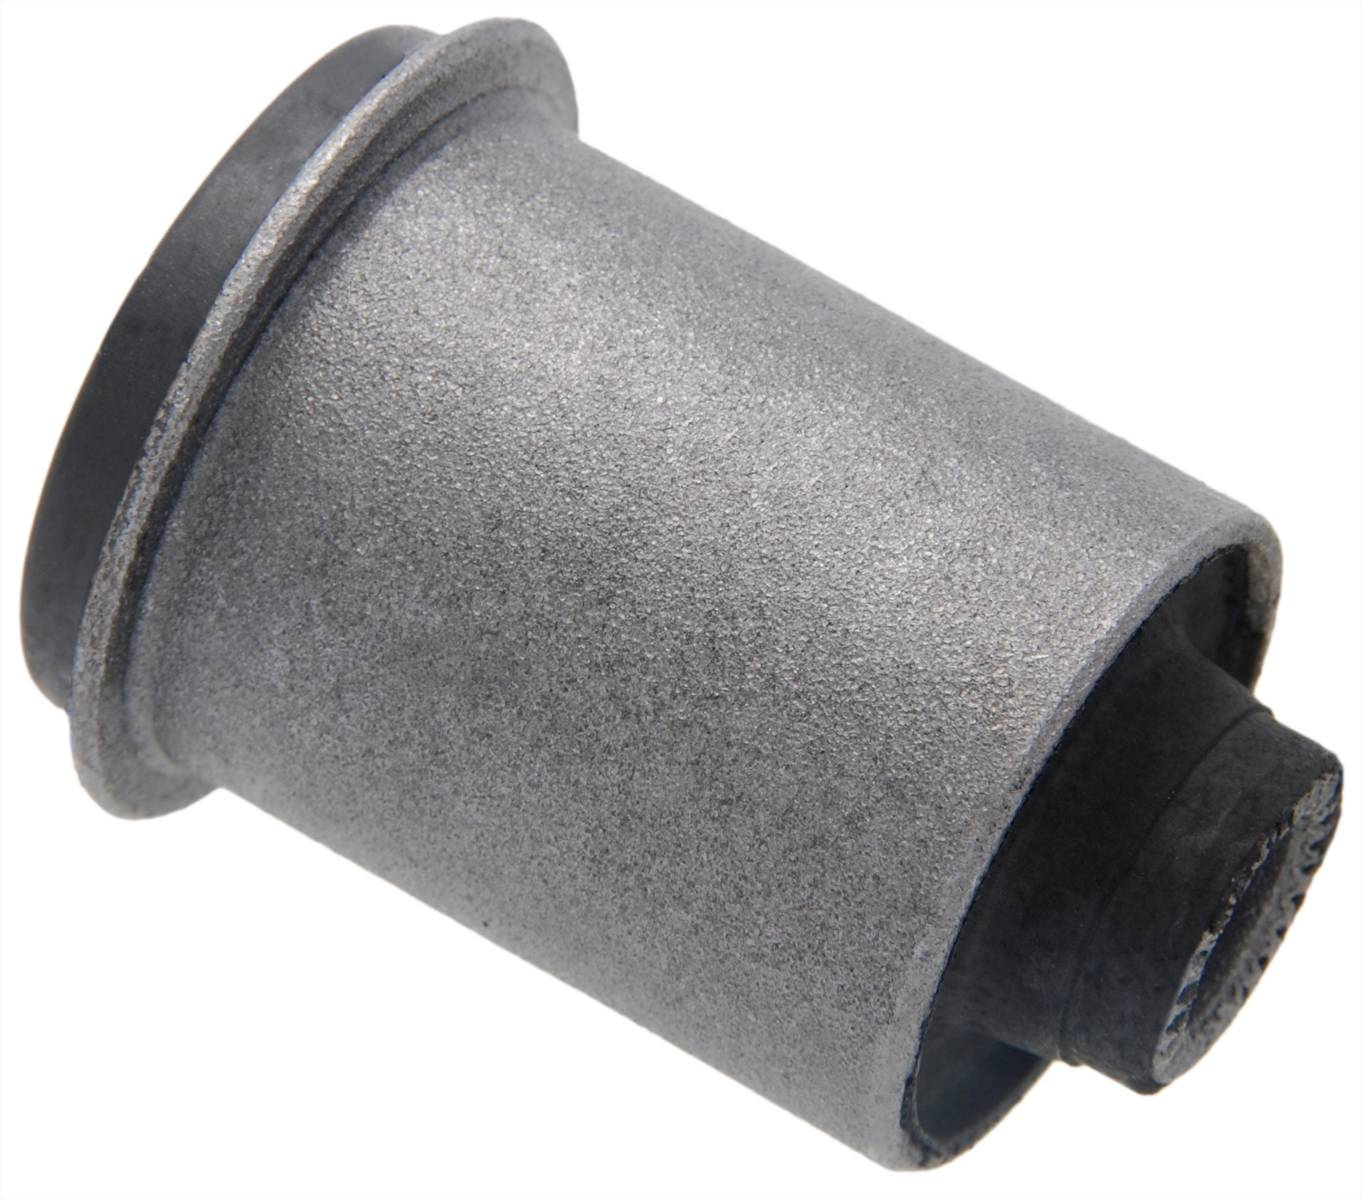 Febest 2010 Toyota Hilux - Suspension Control Arm Bushing FEBEST # TAB-344 OEM # 48630-0K010 at Sears.com